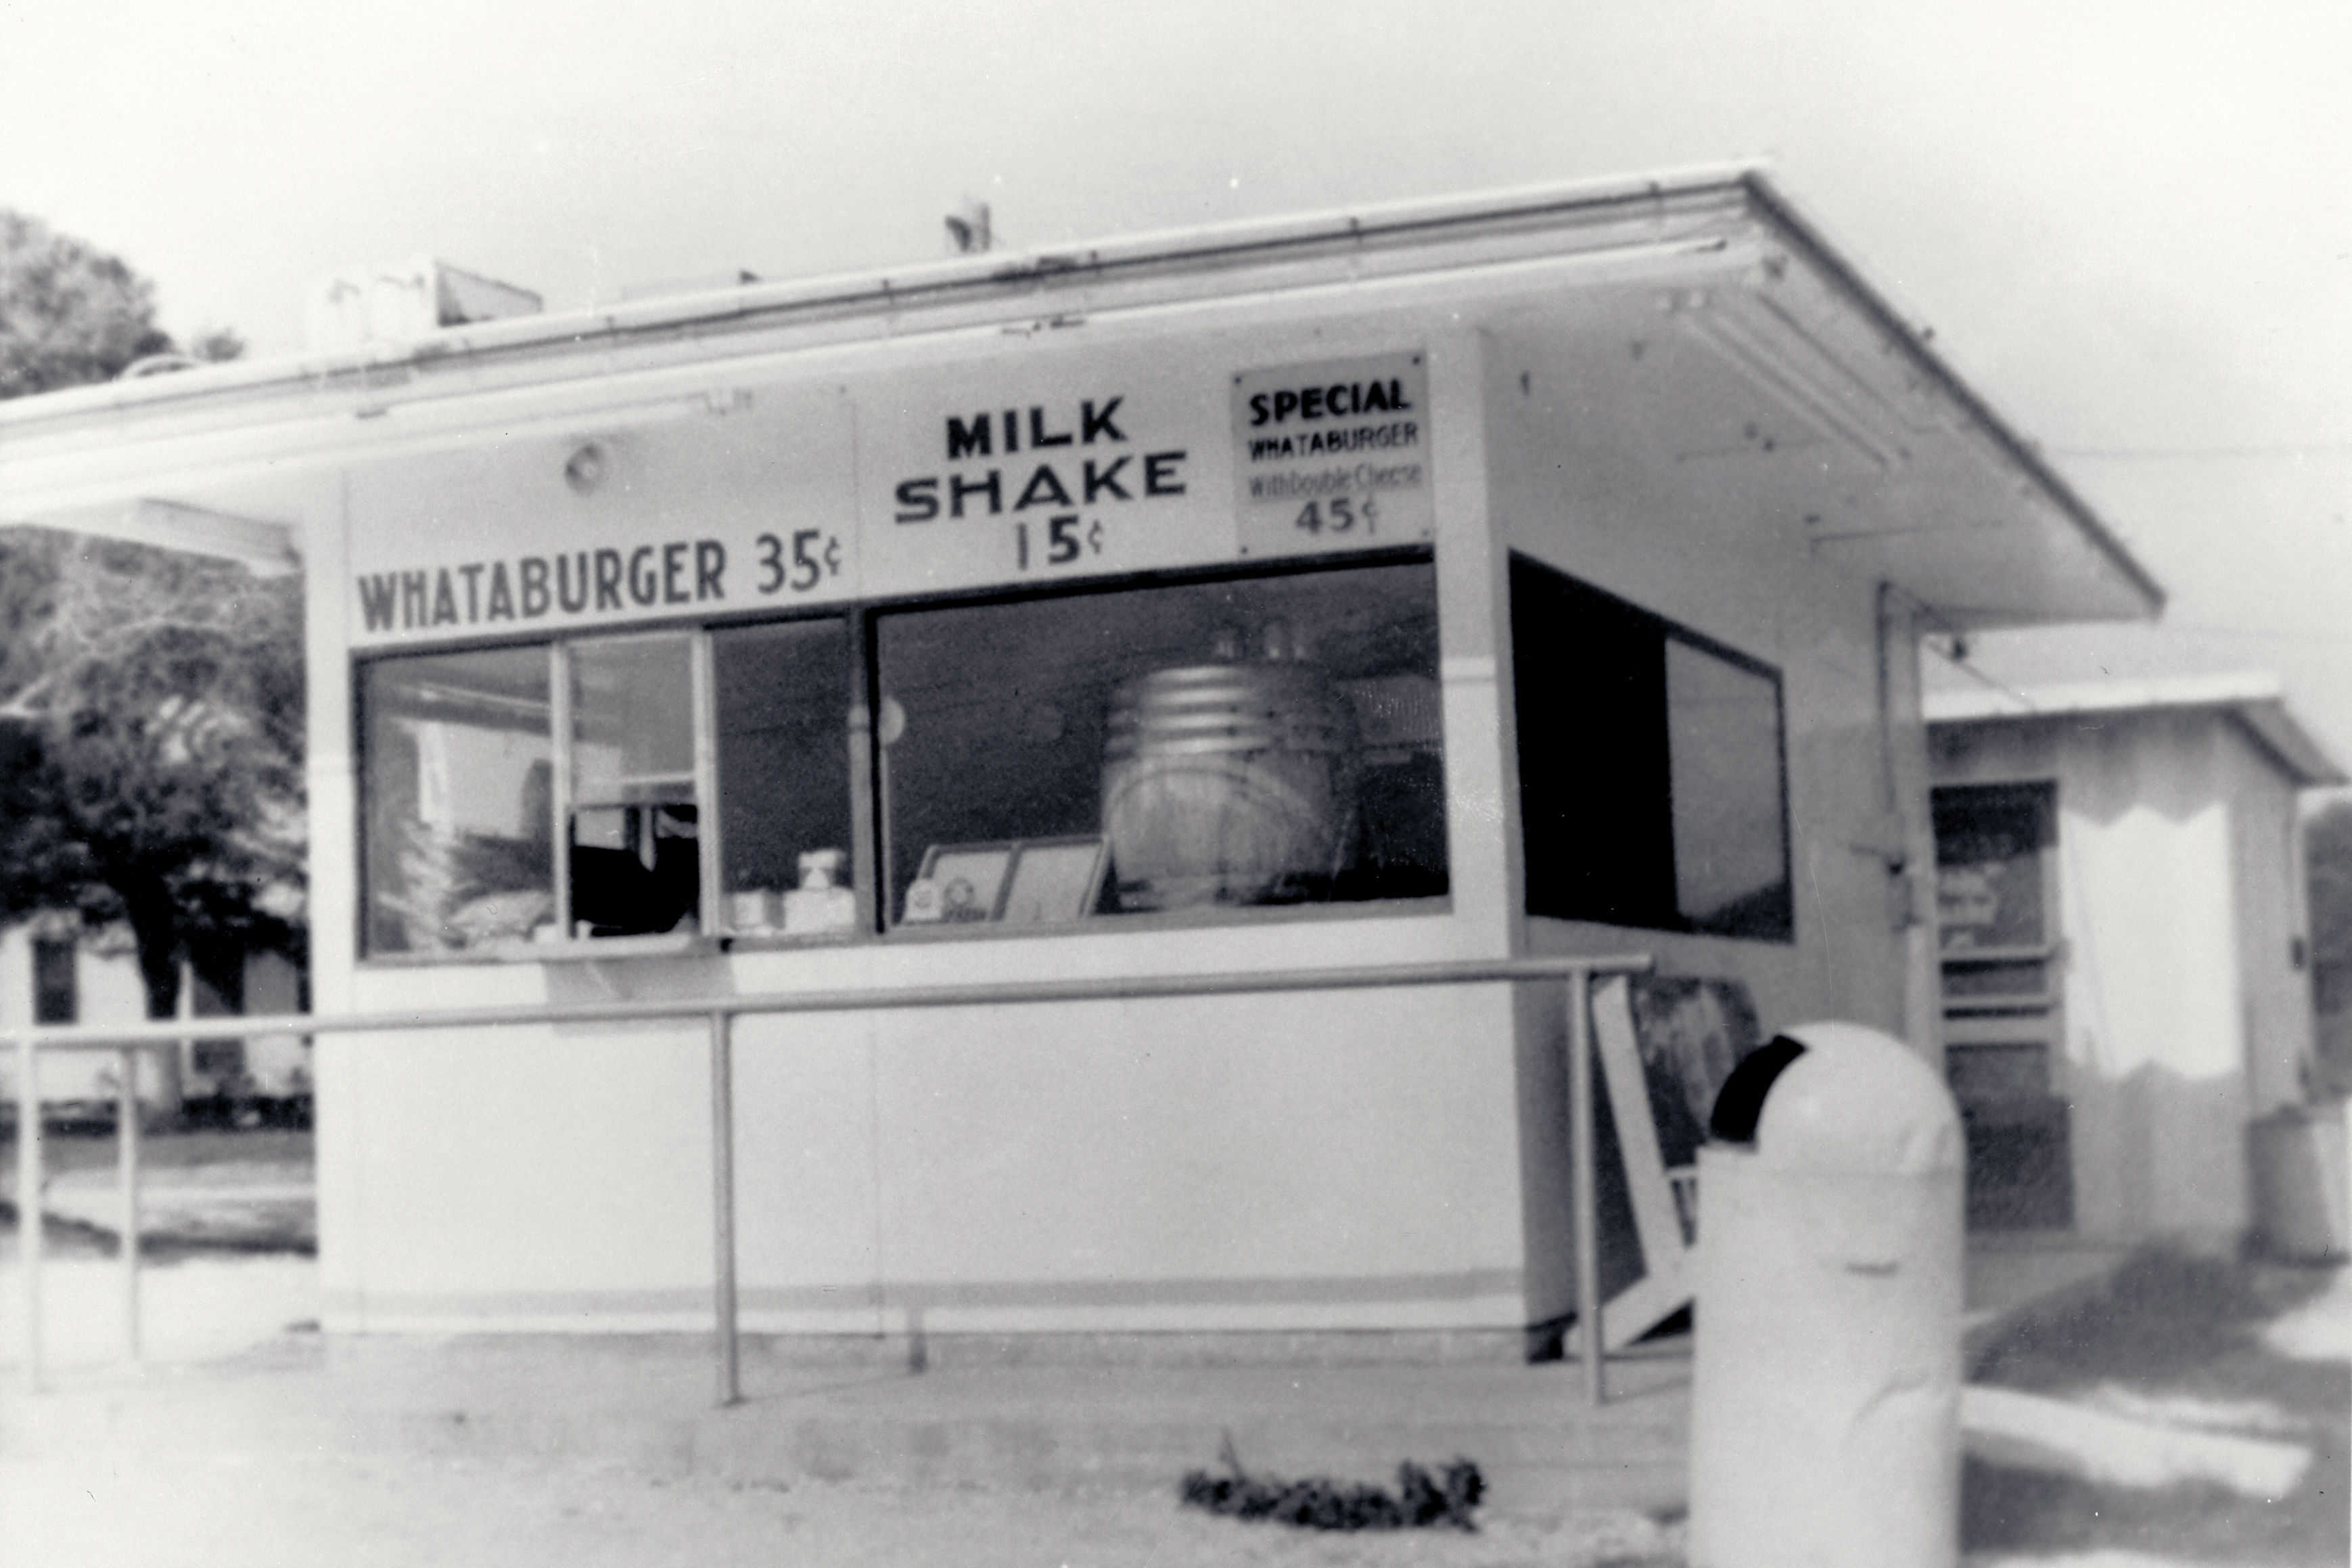 There's A Replica of the Original Whataburger Stand in Corpus Christi